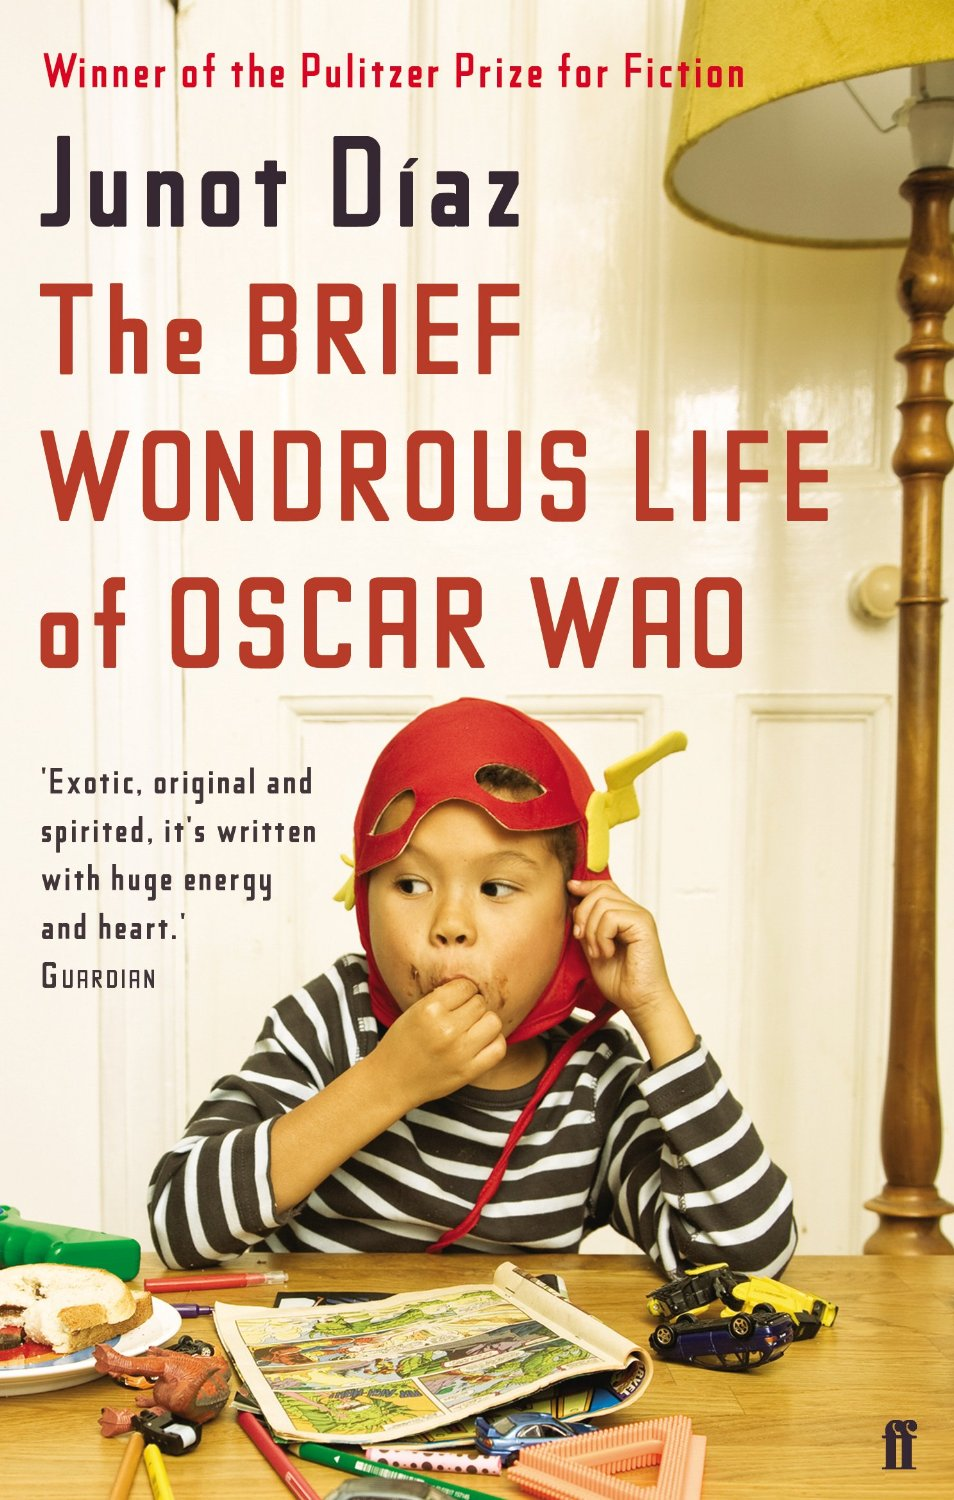 a review of the brief wondrous life of oscar wao a novel by junot daz Read a free sample or buy the brief wondrous life of oscar wao by junot hoped for in a novel by junot diazmatthew sharpe is the reviews silly.